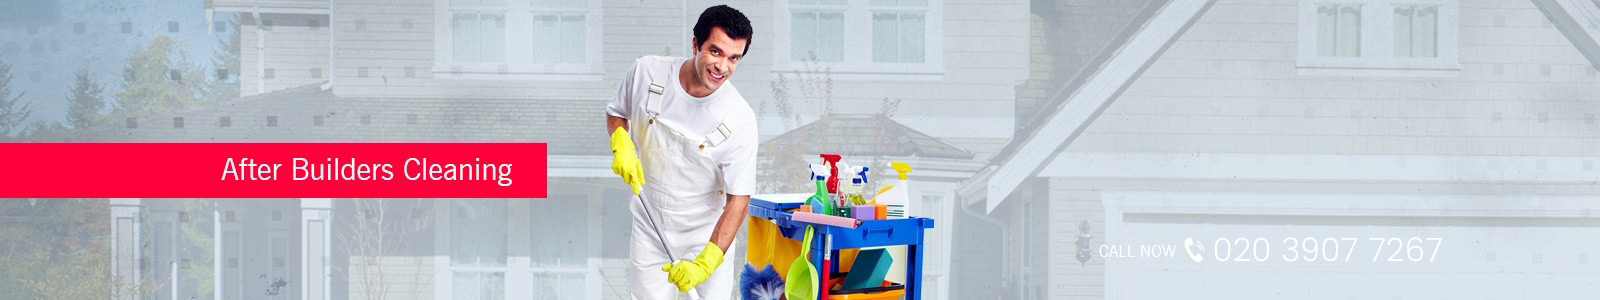 after-builders-cleaning2